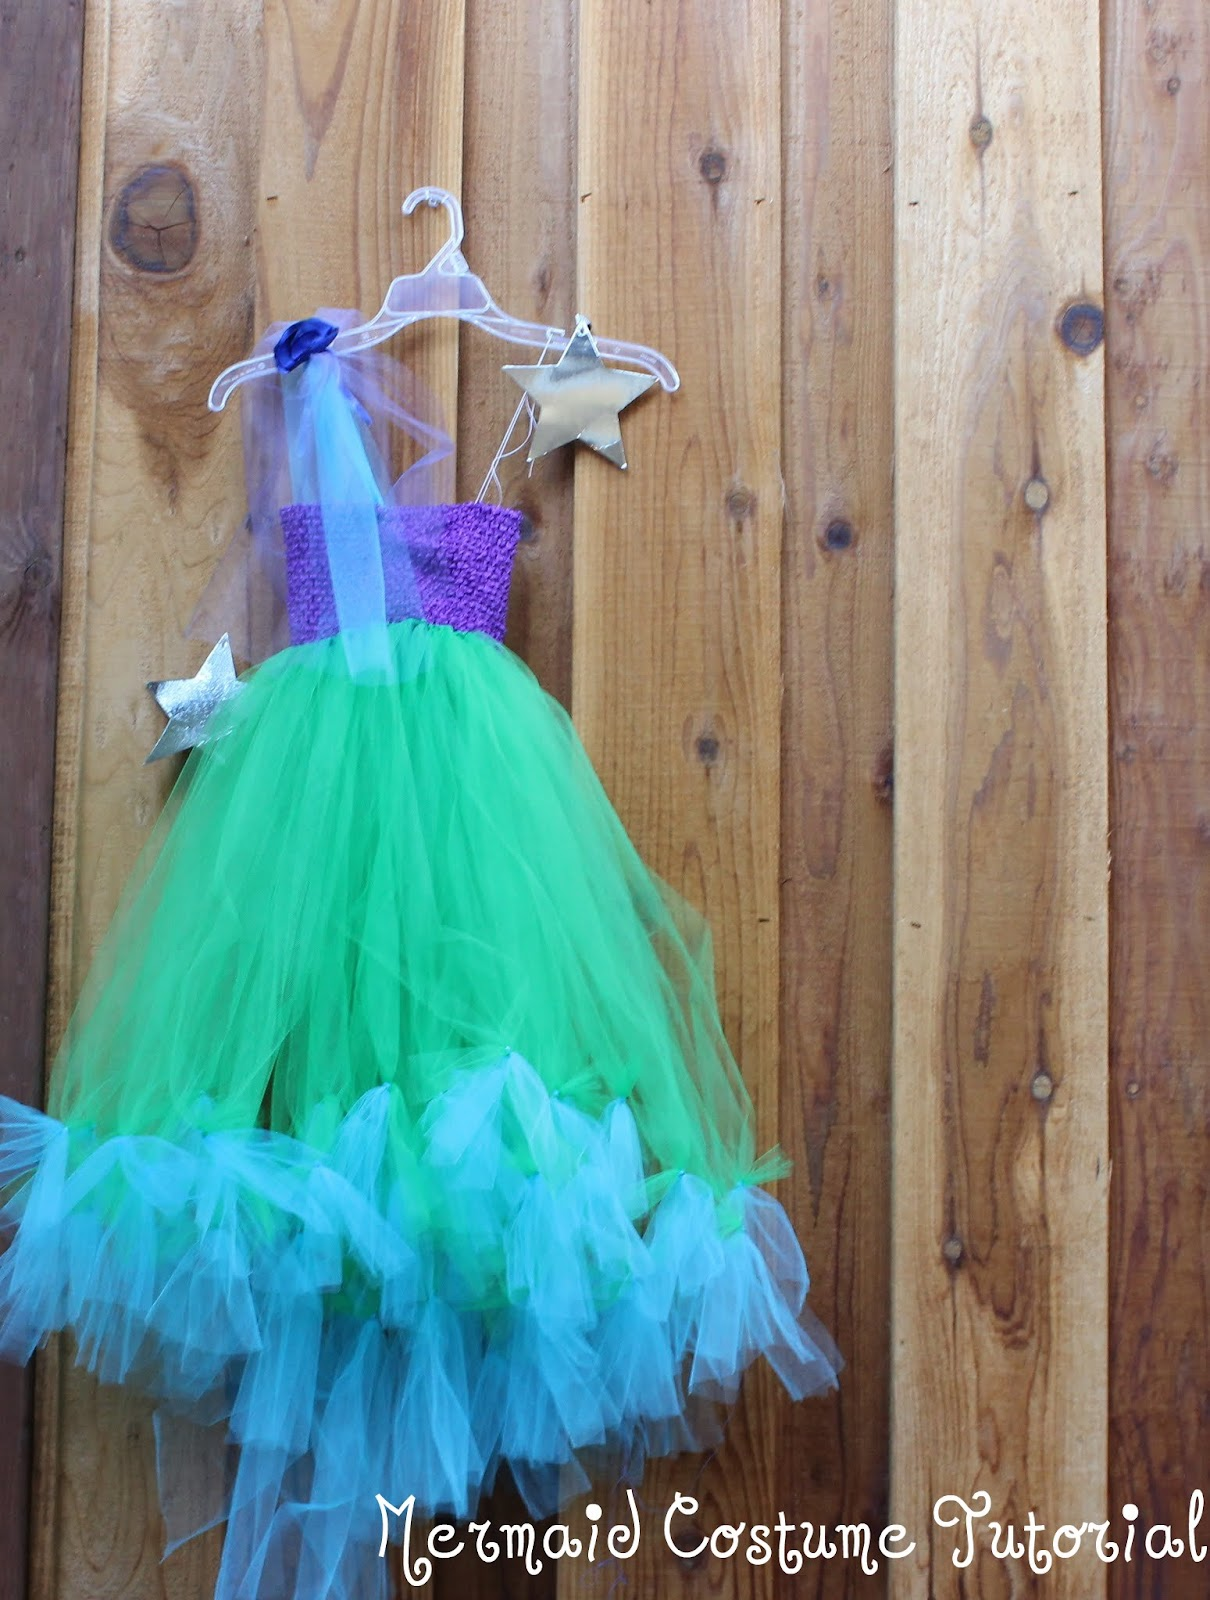 Make a no sew halloween costume for 20 mermaid princess or fairy what if i told you that you could make her favorite costume yourself for less than 20 solutioingenieria Choice Image